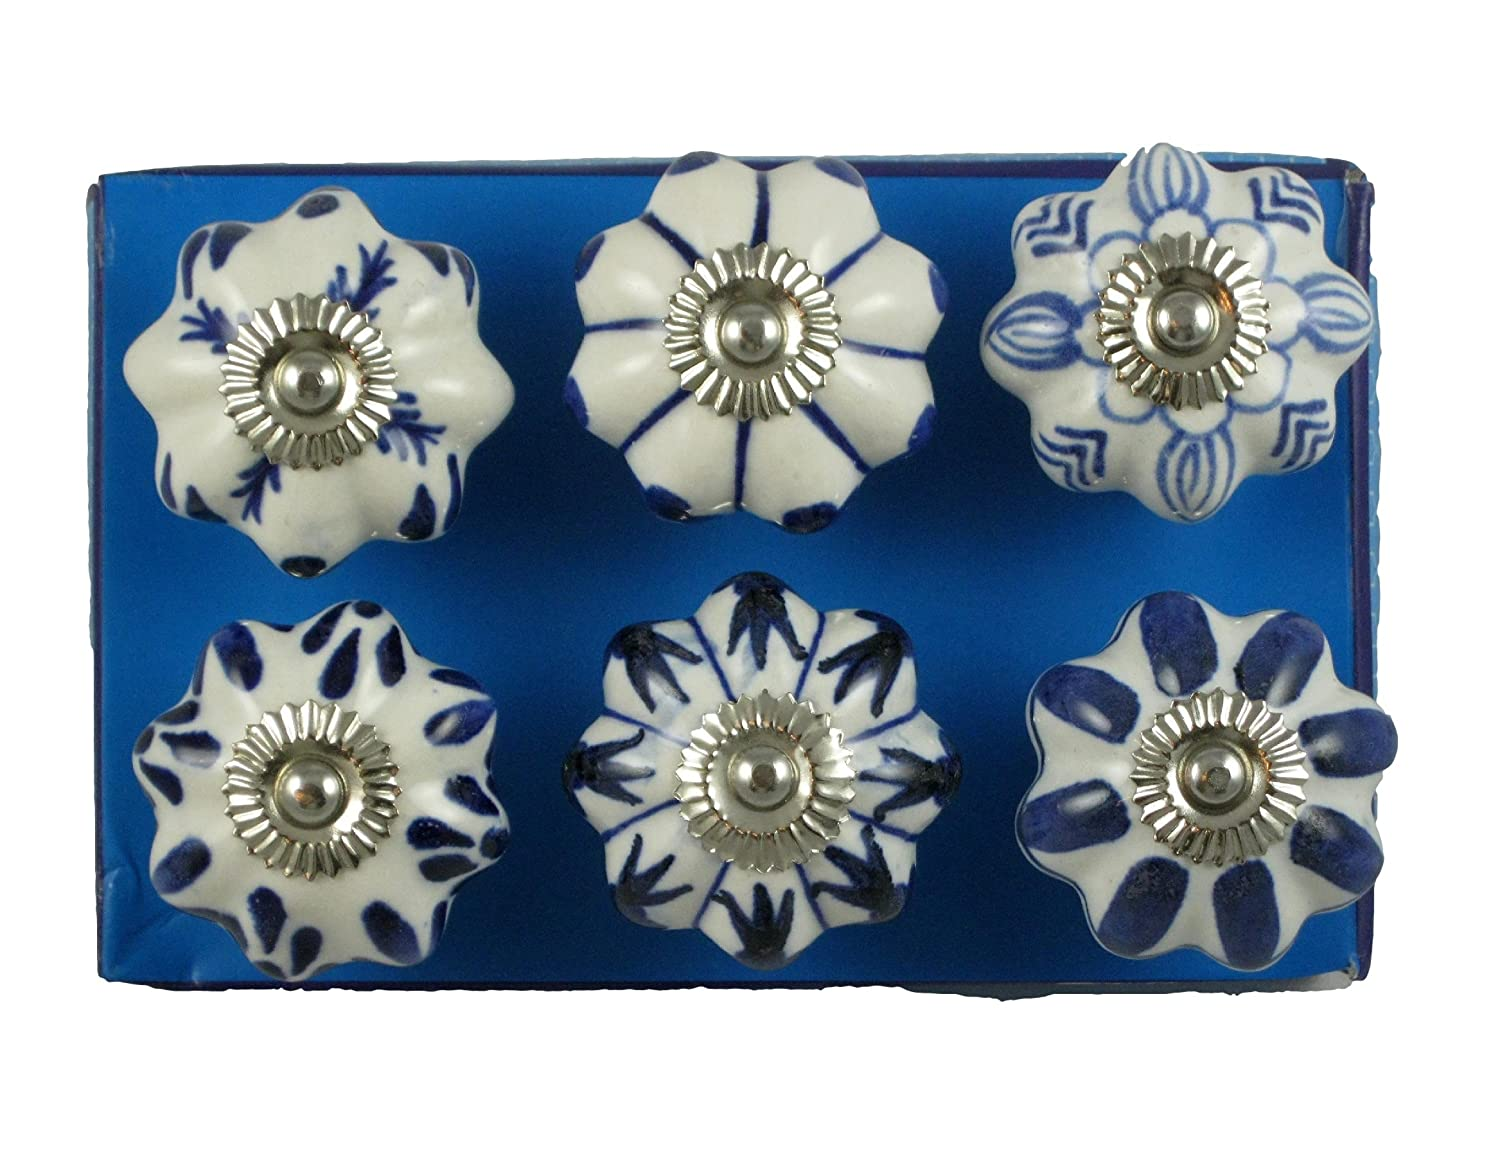 Jaipur Market 6 Count Decorative Ceramic Drawer Pull Knobs Blue and White